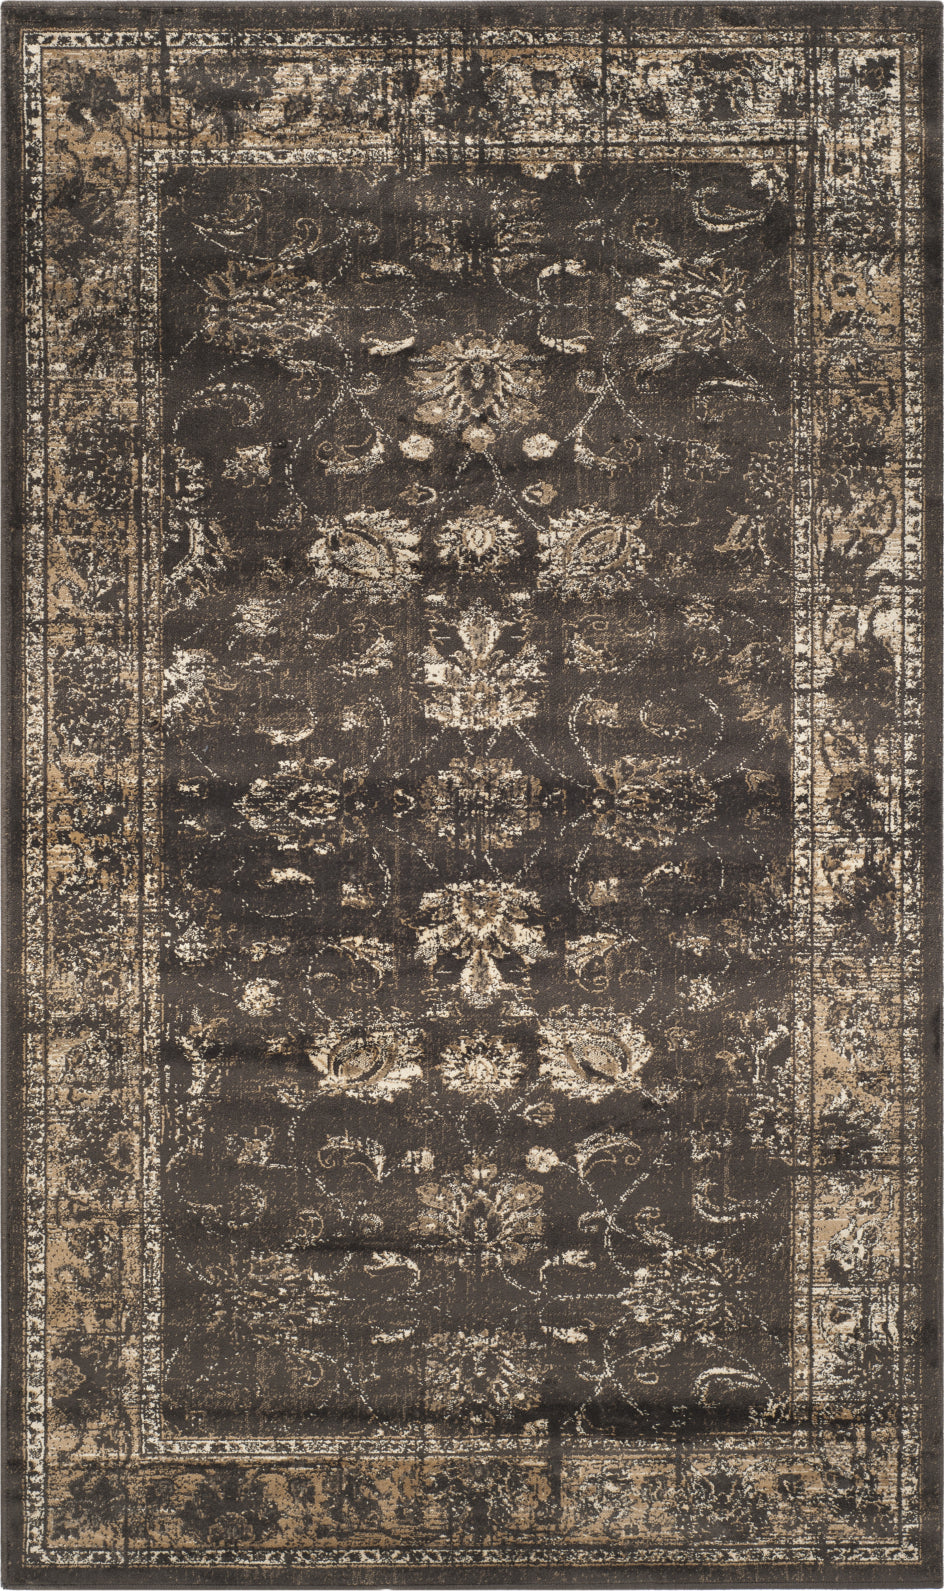 Safavieh Vintage VTG117 Soft Anthracite Area Rug main image